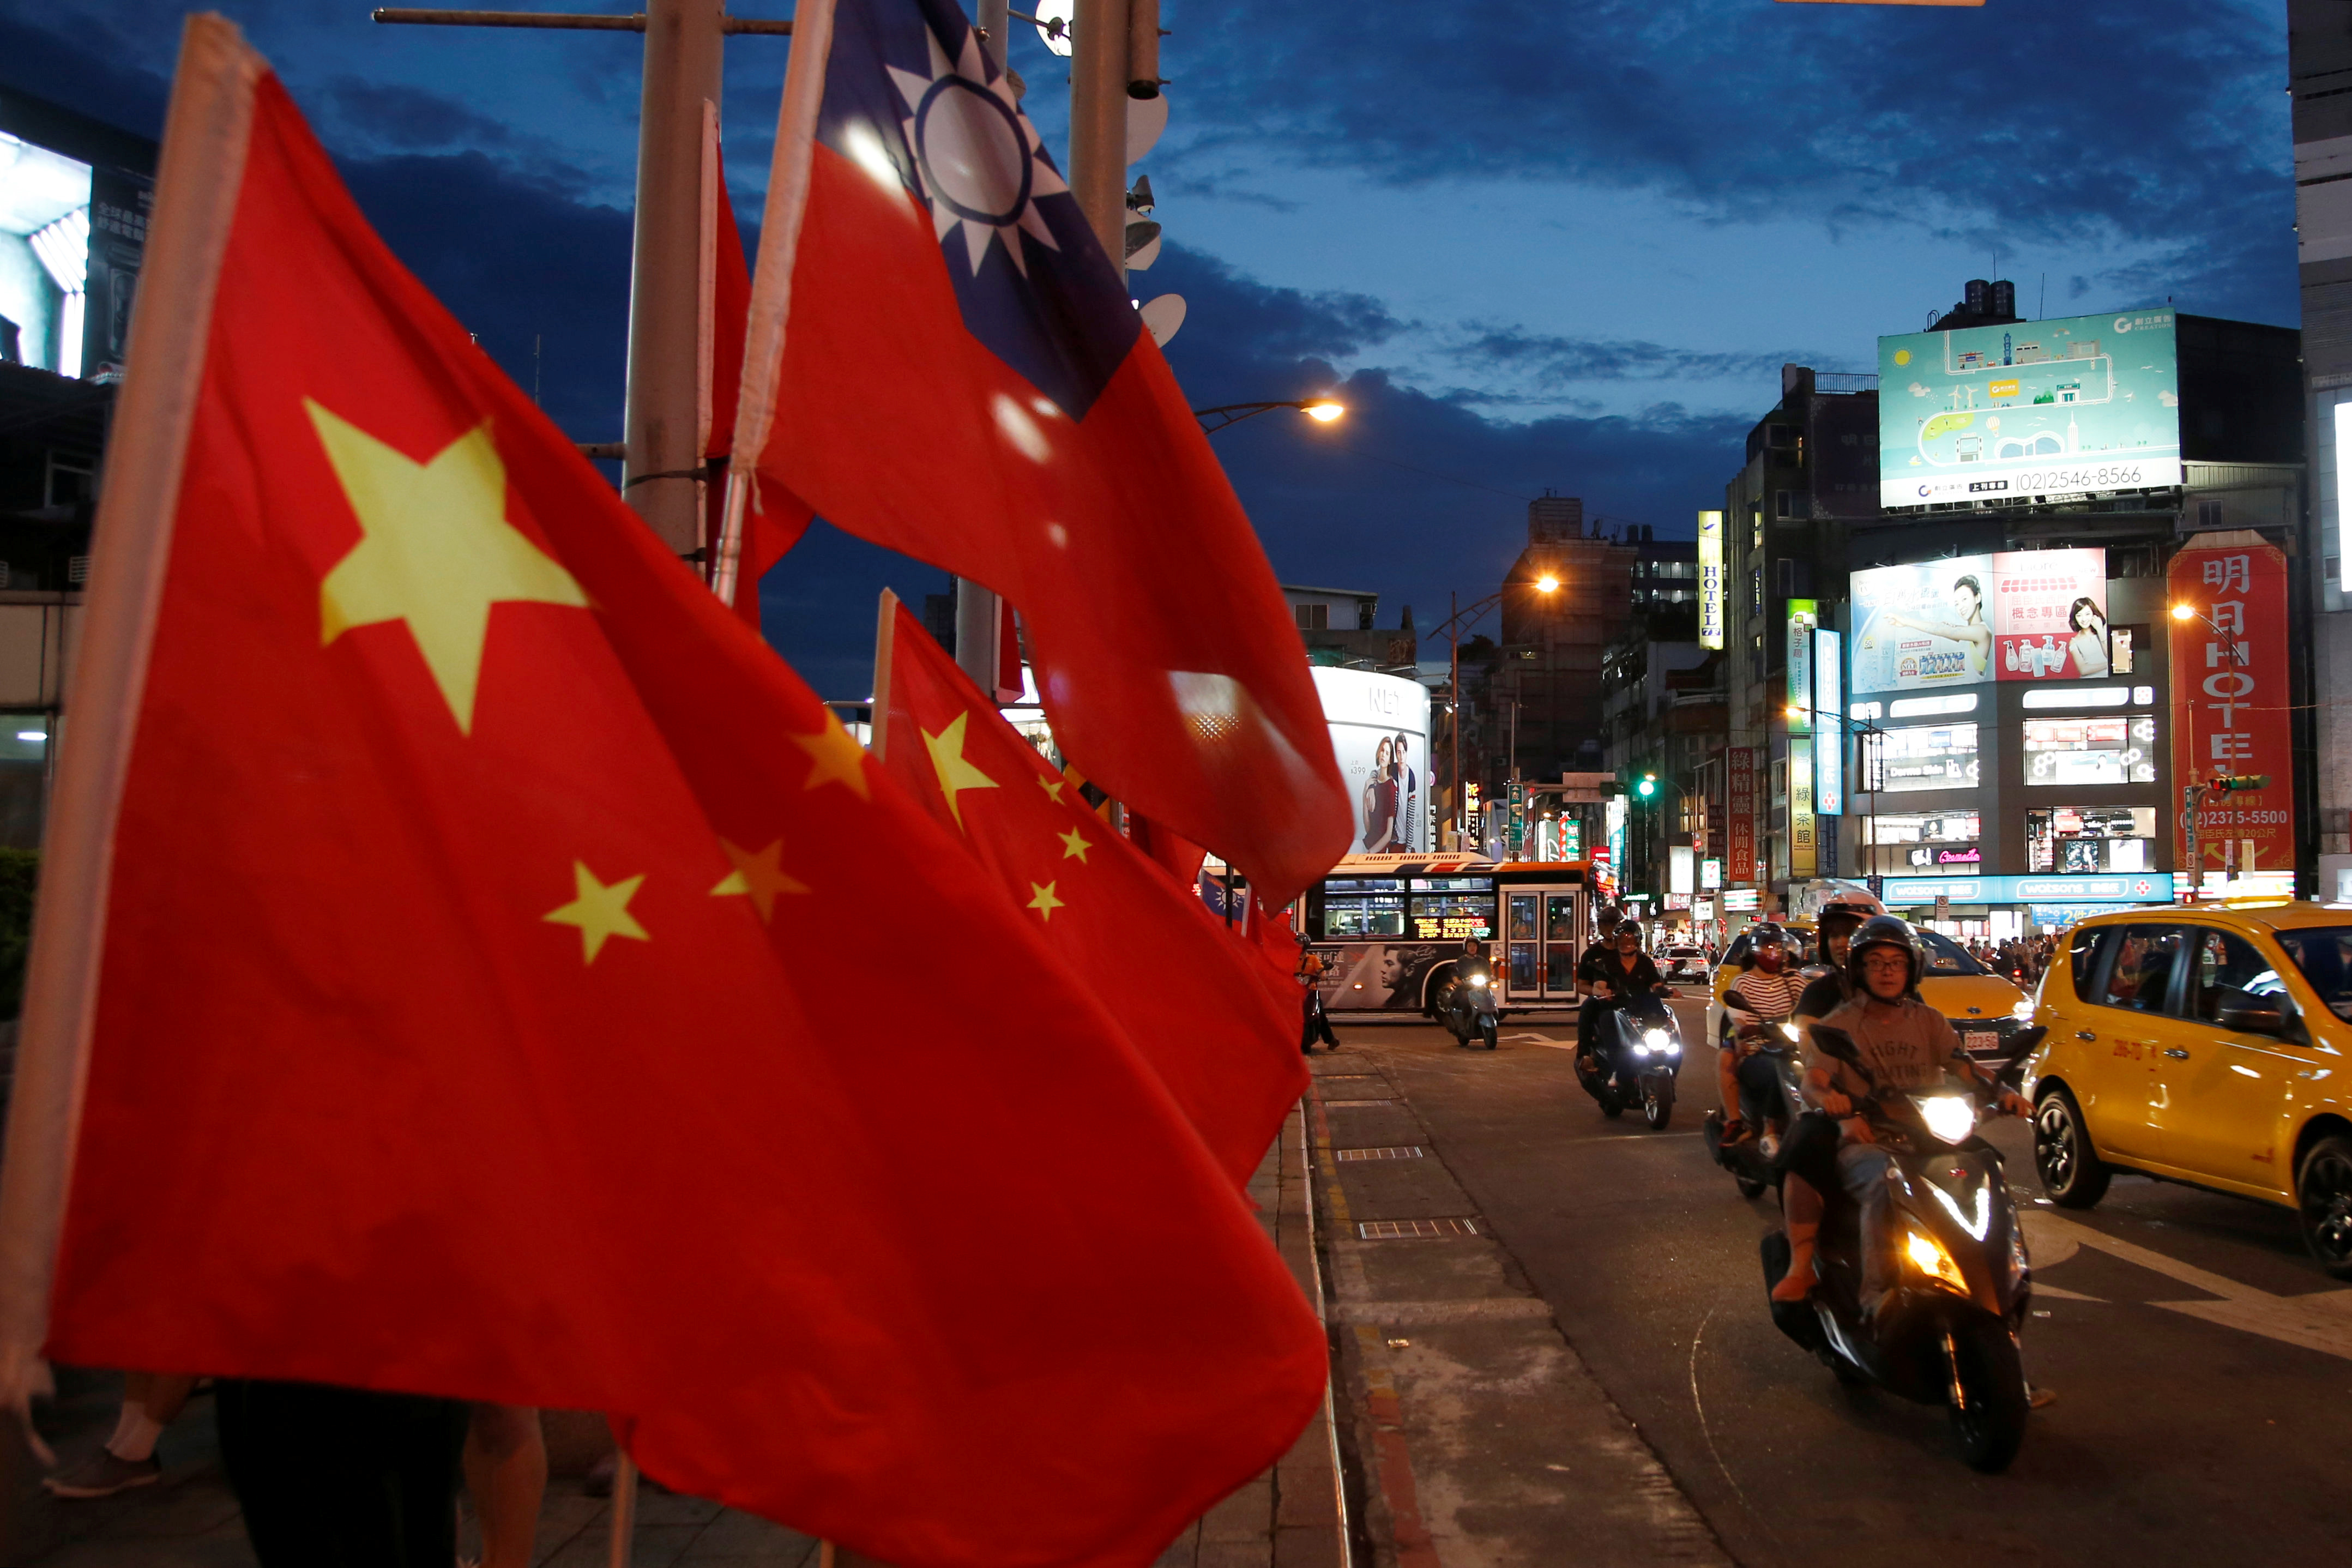 FILE - Flags of China and Taiwan flutter next to each other during a rally calling for peaceful reunification, days before the inauguration ceremony of President Tsai Ing-wen, in Taipei, Taiwan, May 14, 2016.